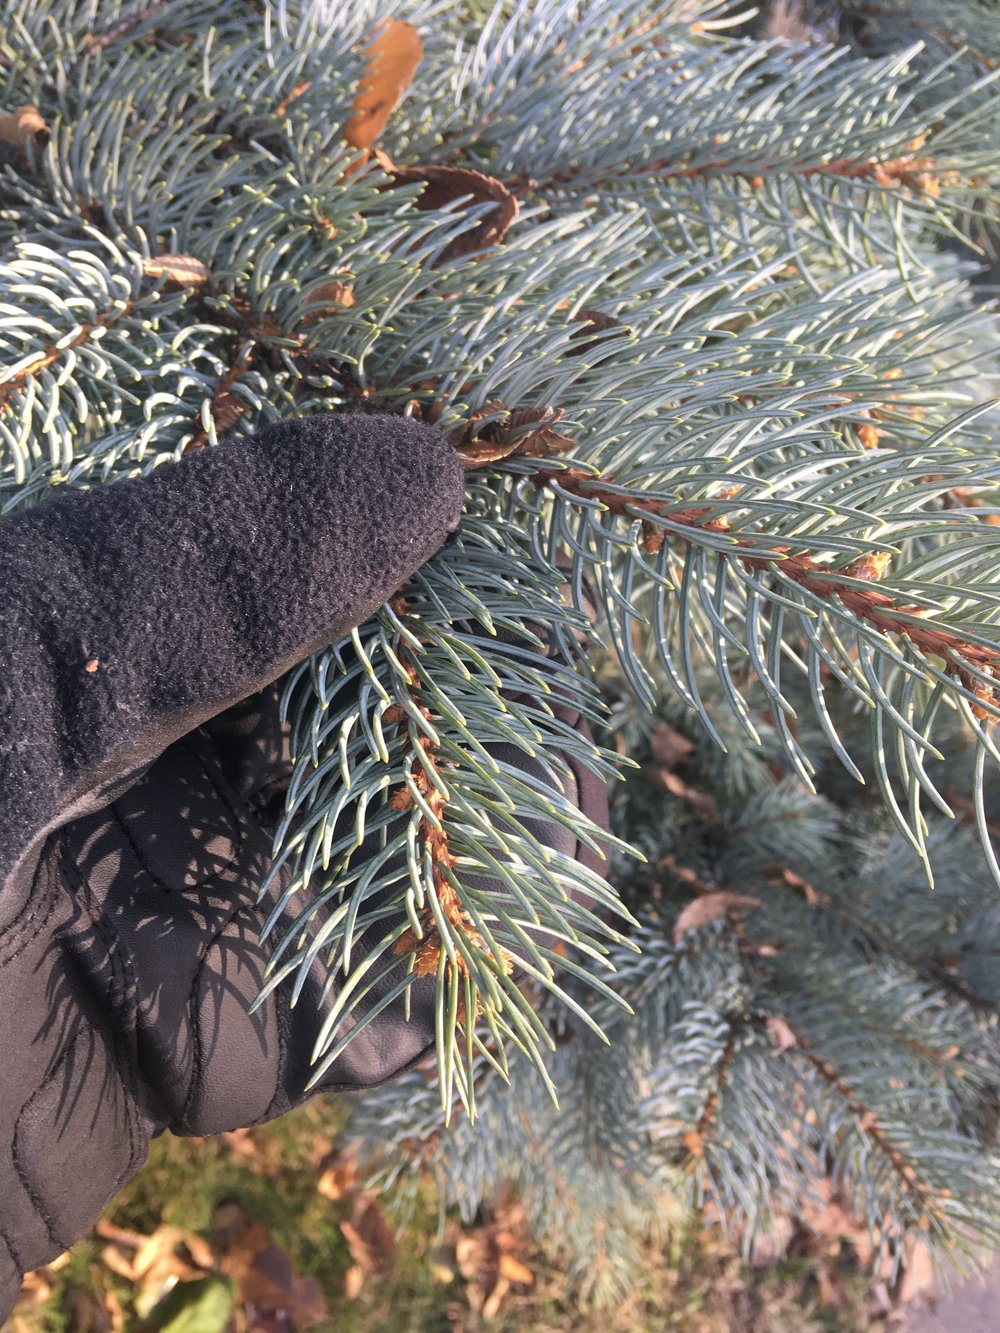 Spruce needles are sharply pointed, roughly rectangular in cross-section, and are arranged in a spiral on the twig.